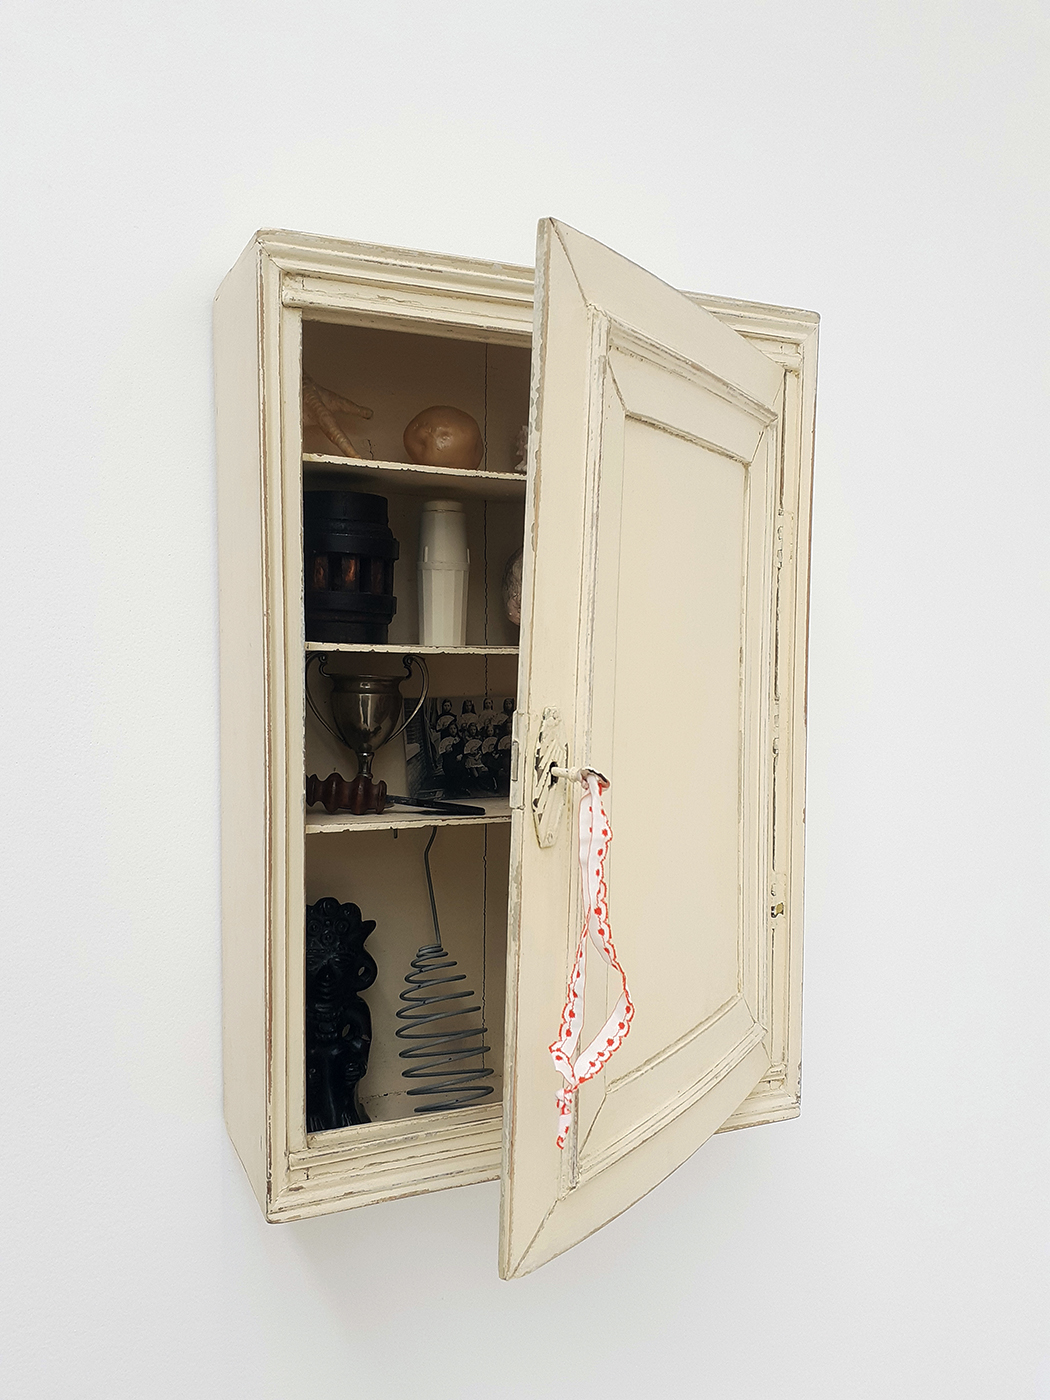 Mark Dion - The Medecine Cabinet of Mystery, 2013-2019